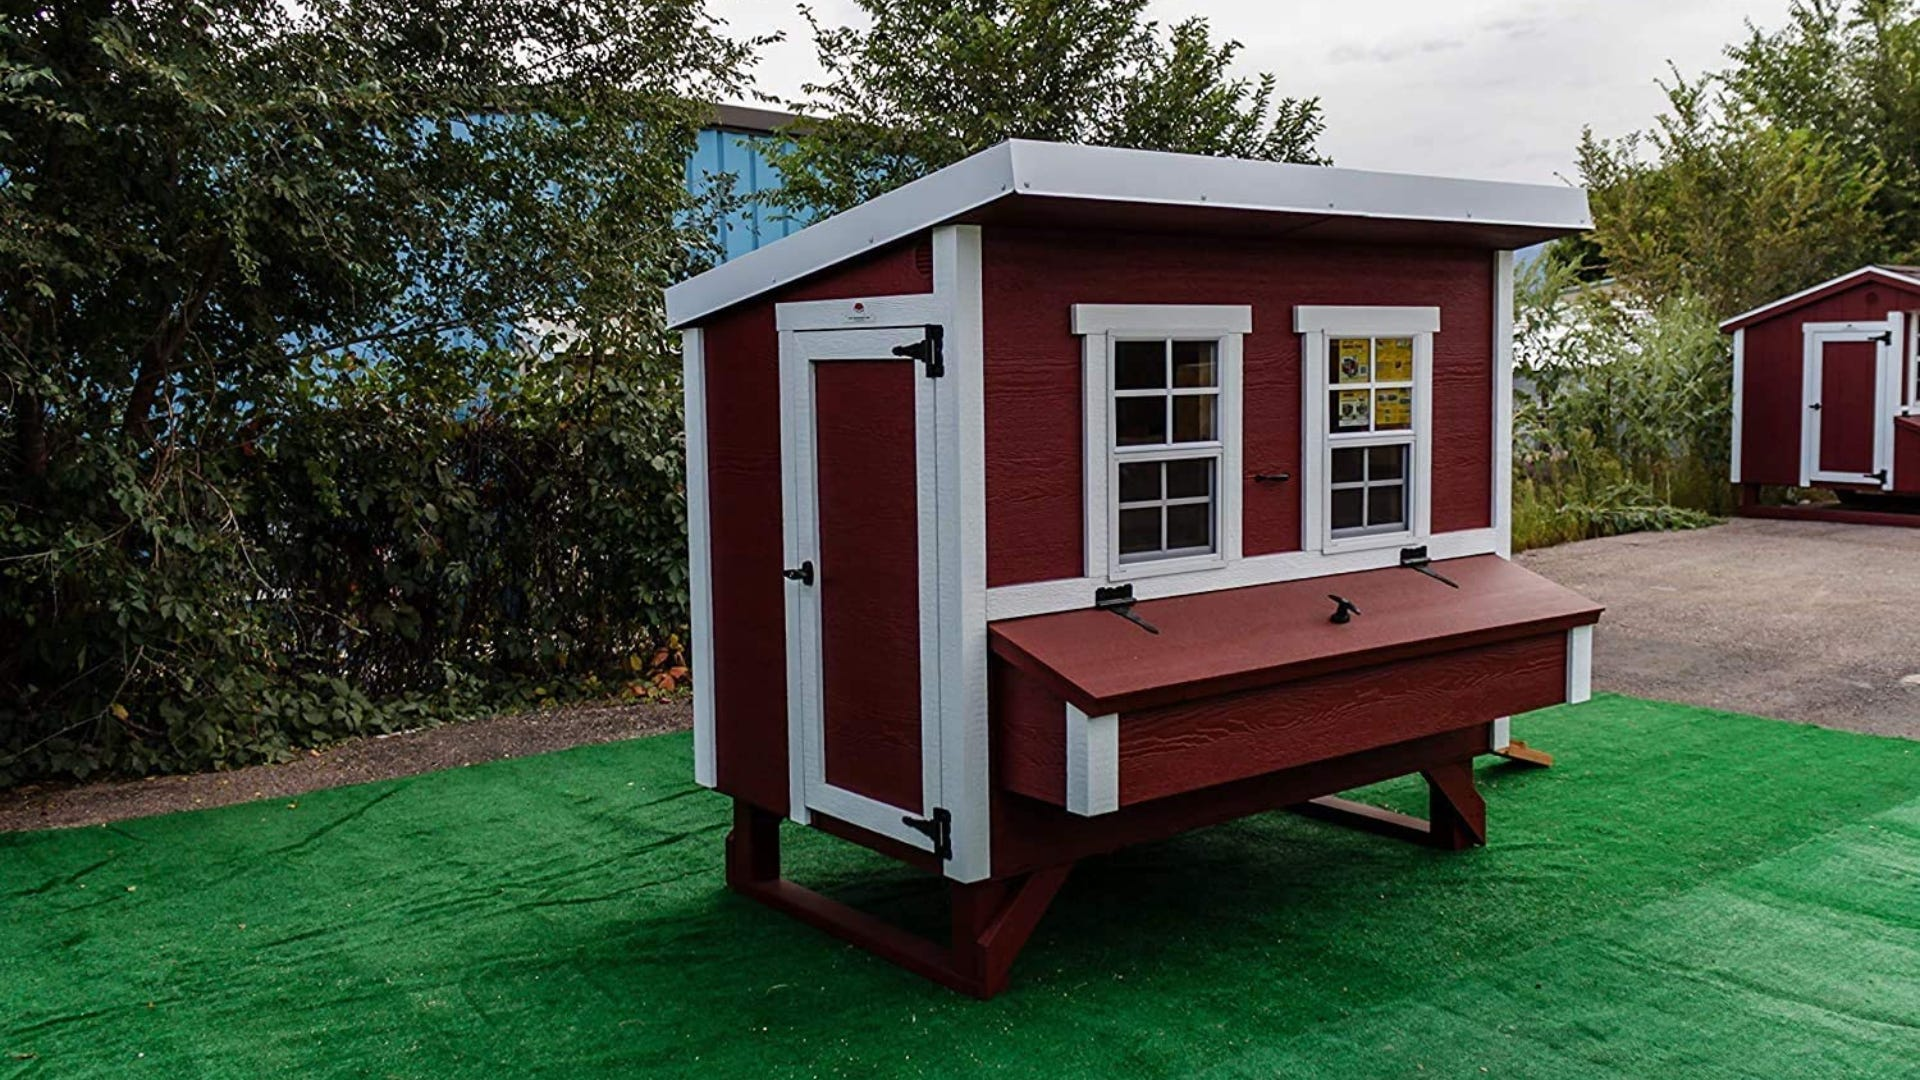 Red painted wooden coop with white trim sitting in a grassy area.